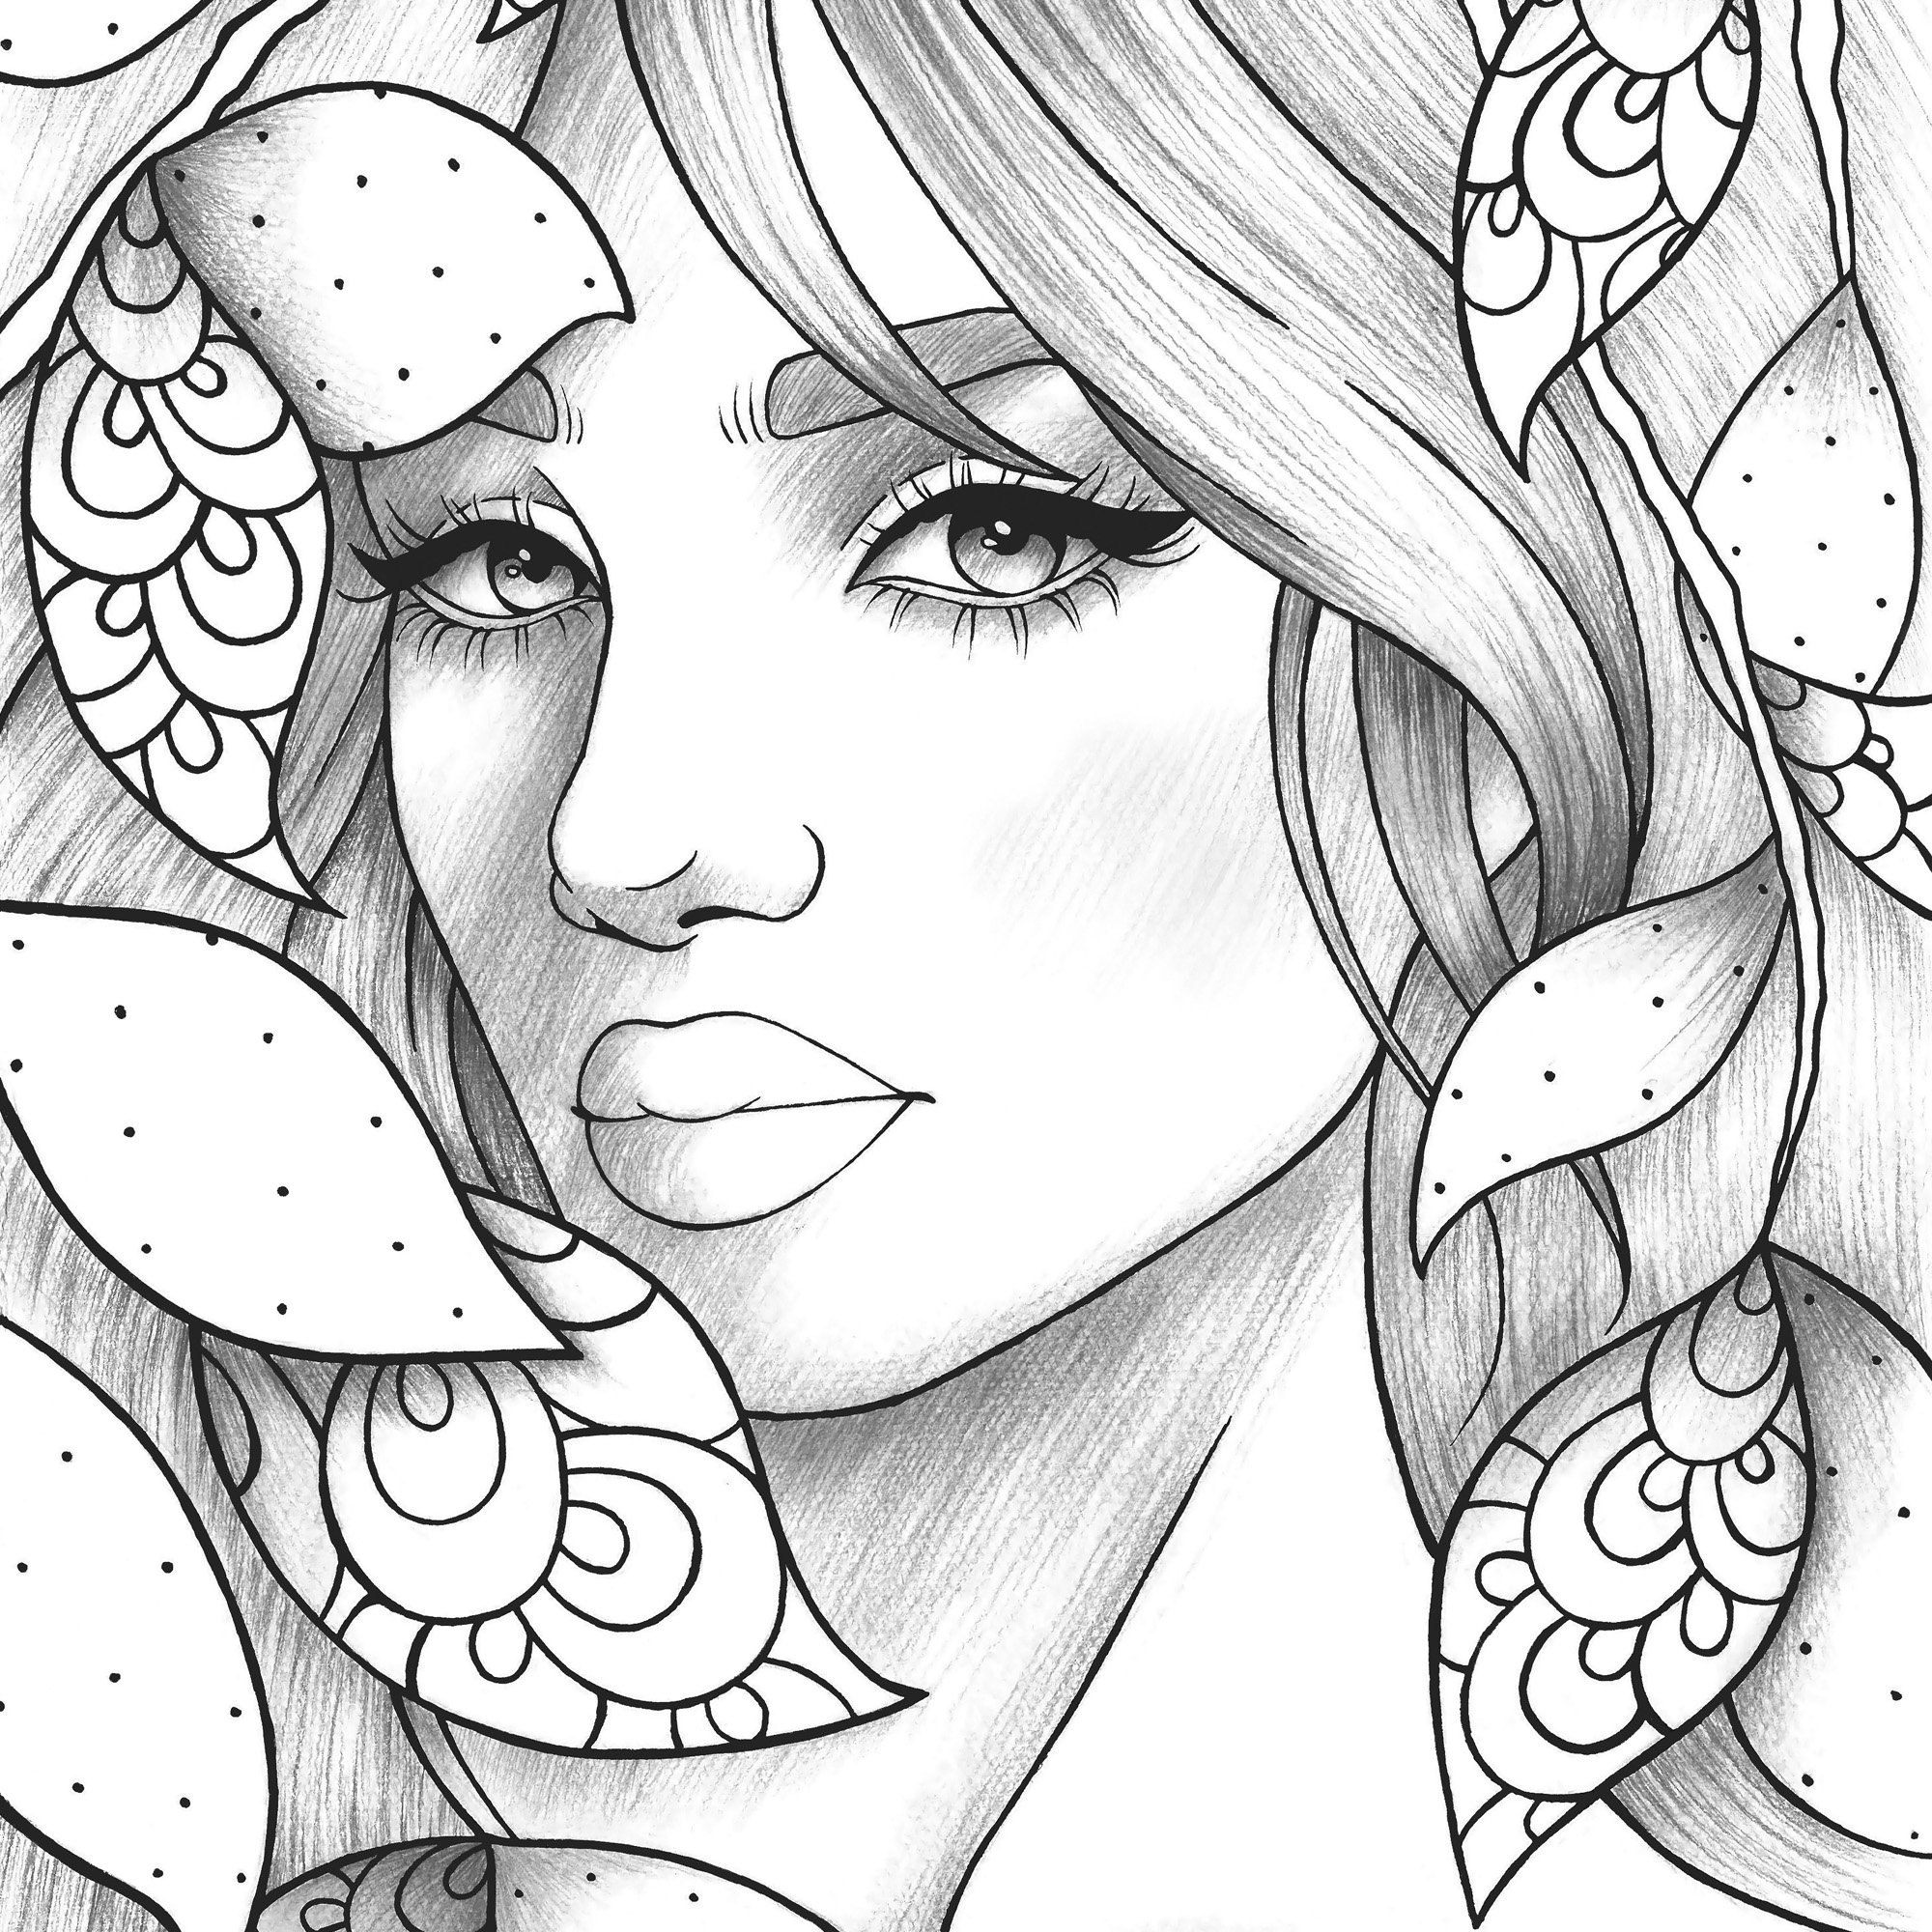 coloring pages of girls realistic the 25 best ideas for realistic girl people coloring pages realistic of pages girls coloring